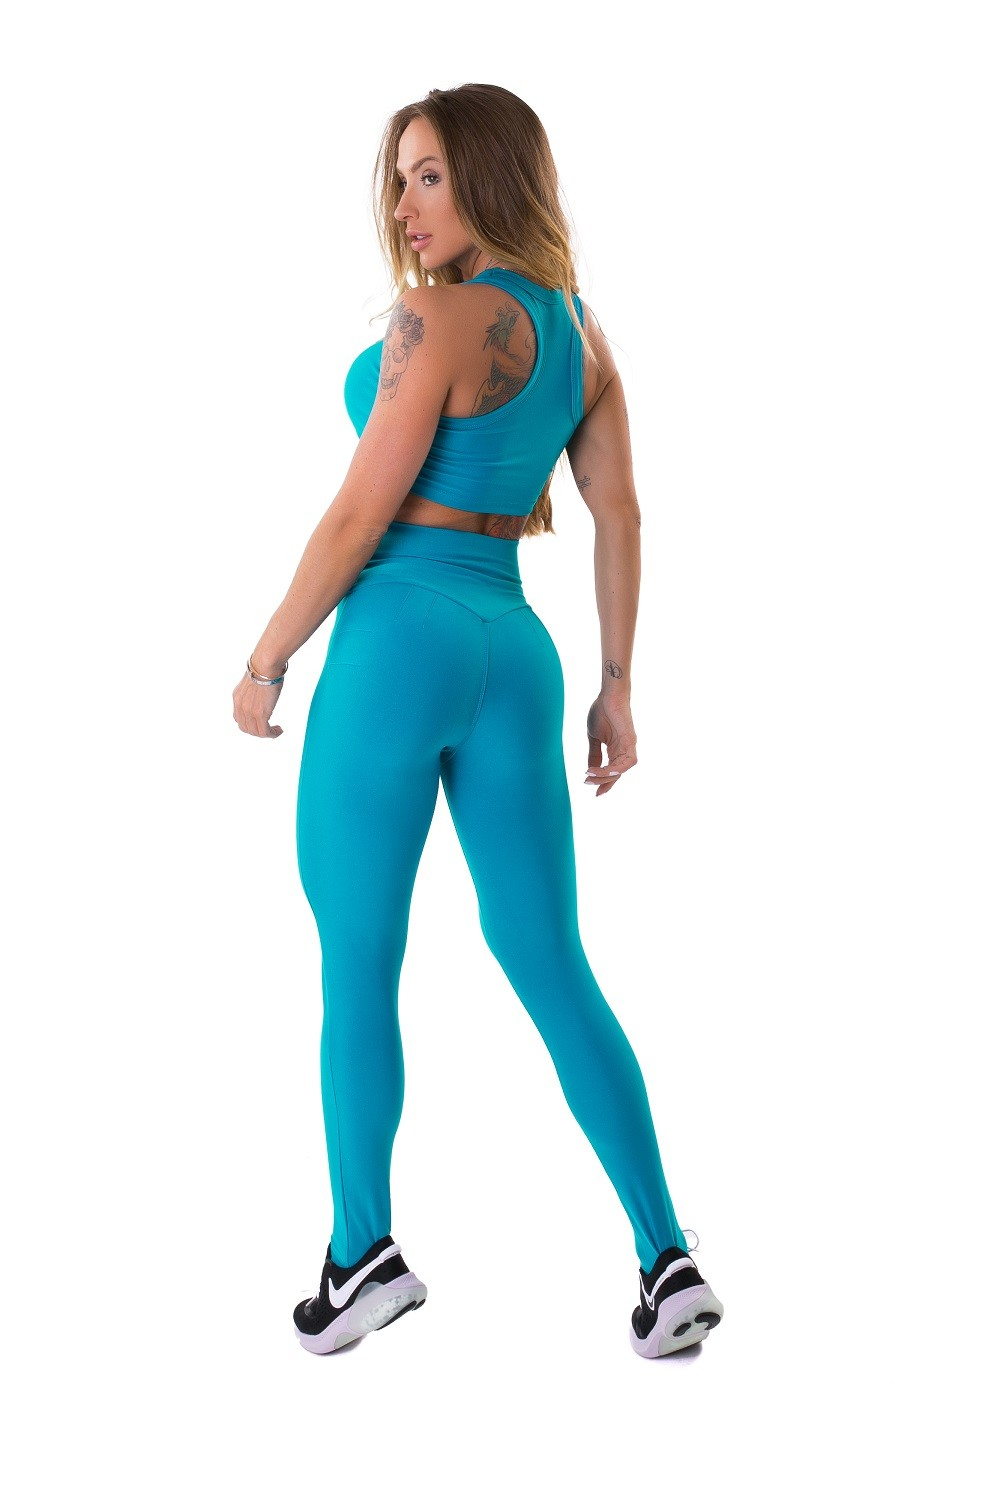 CROPPED ENERGETIC ACQUA LETSGYM